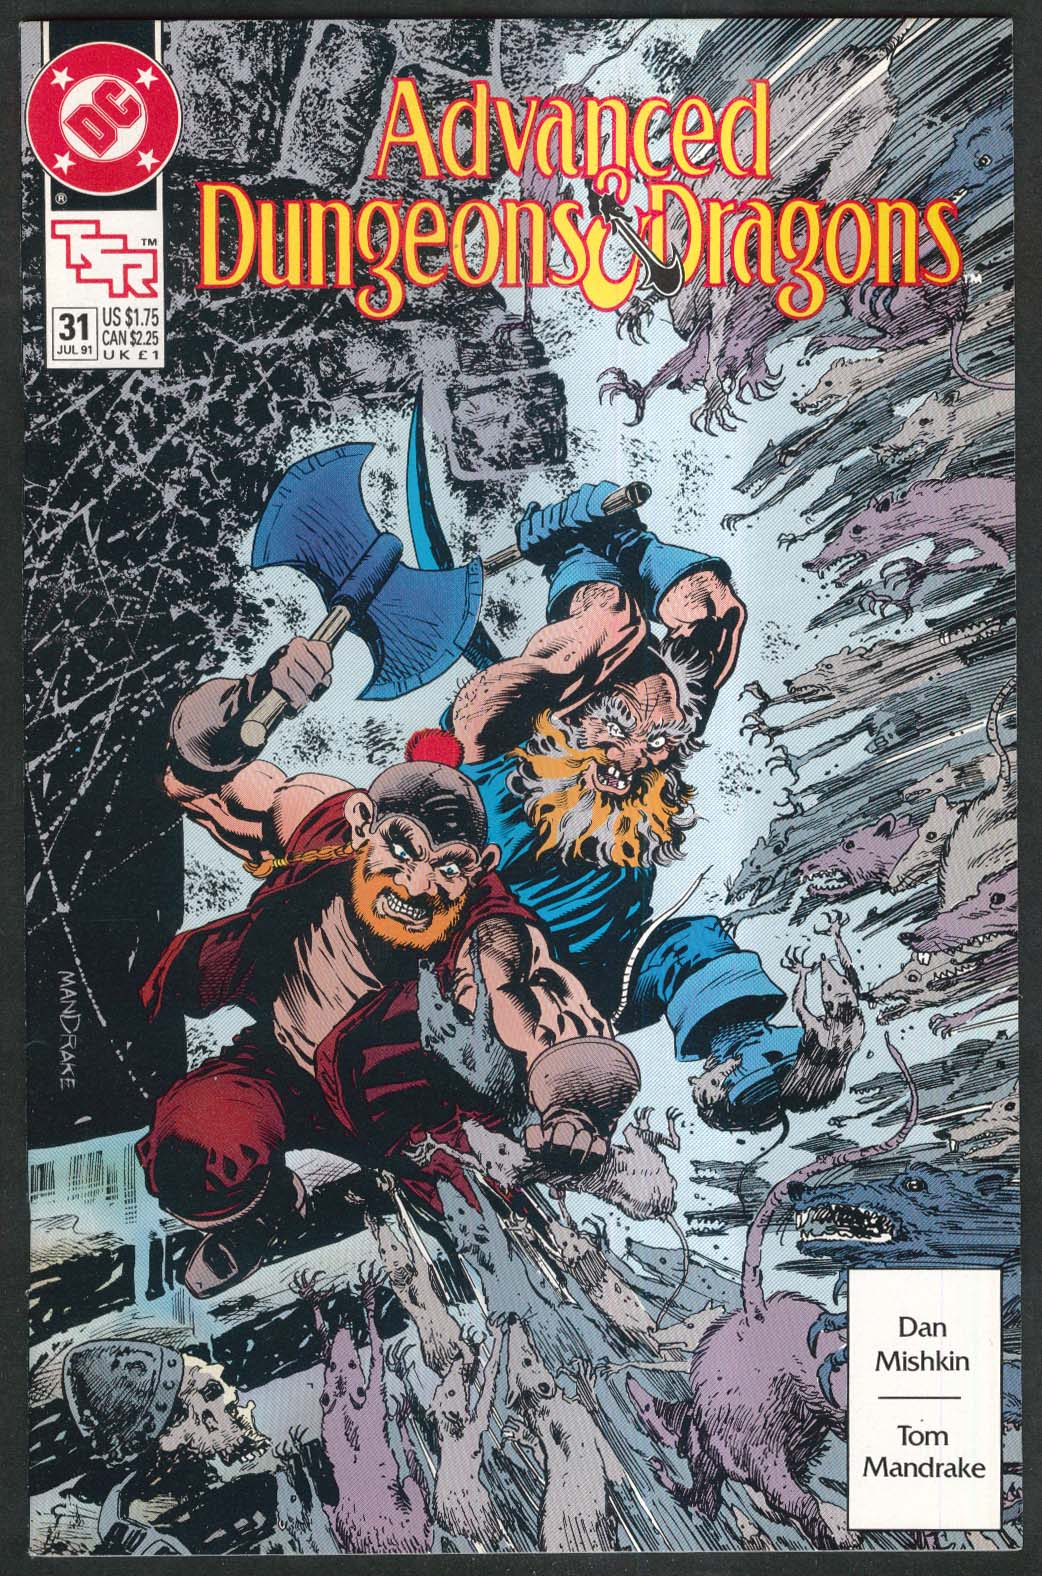 ADVANCED DUNGEONS & DRAGONS #31 DC comic book 7 1991